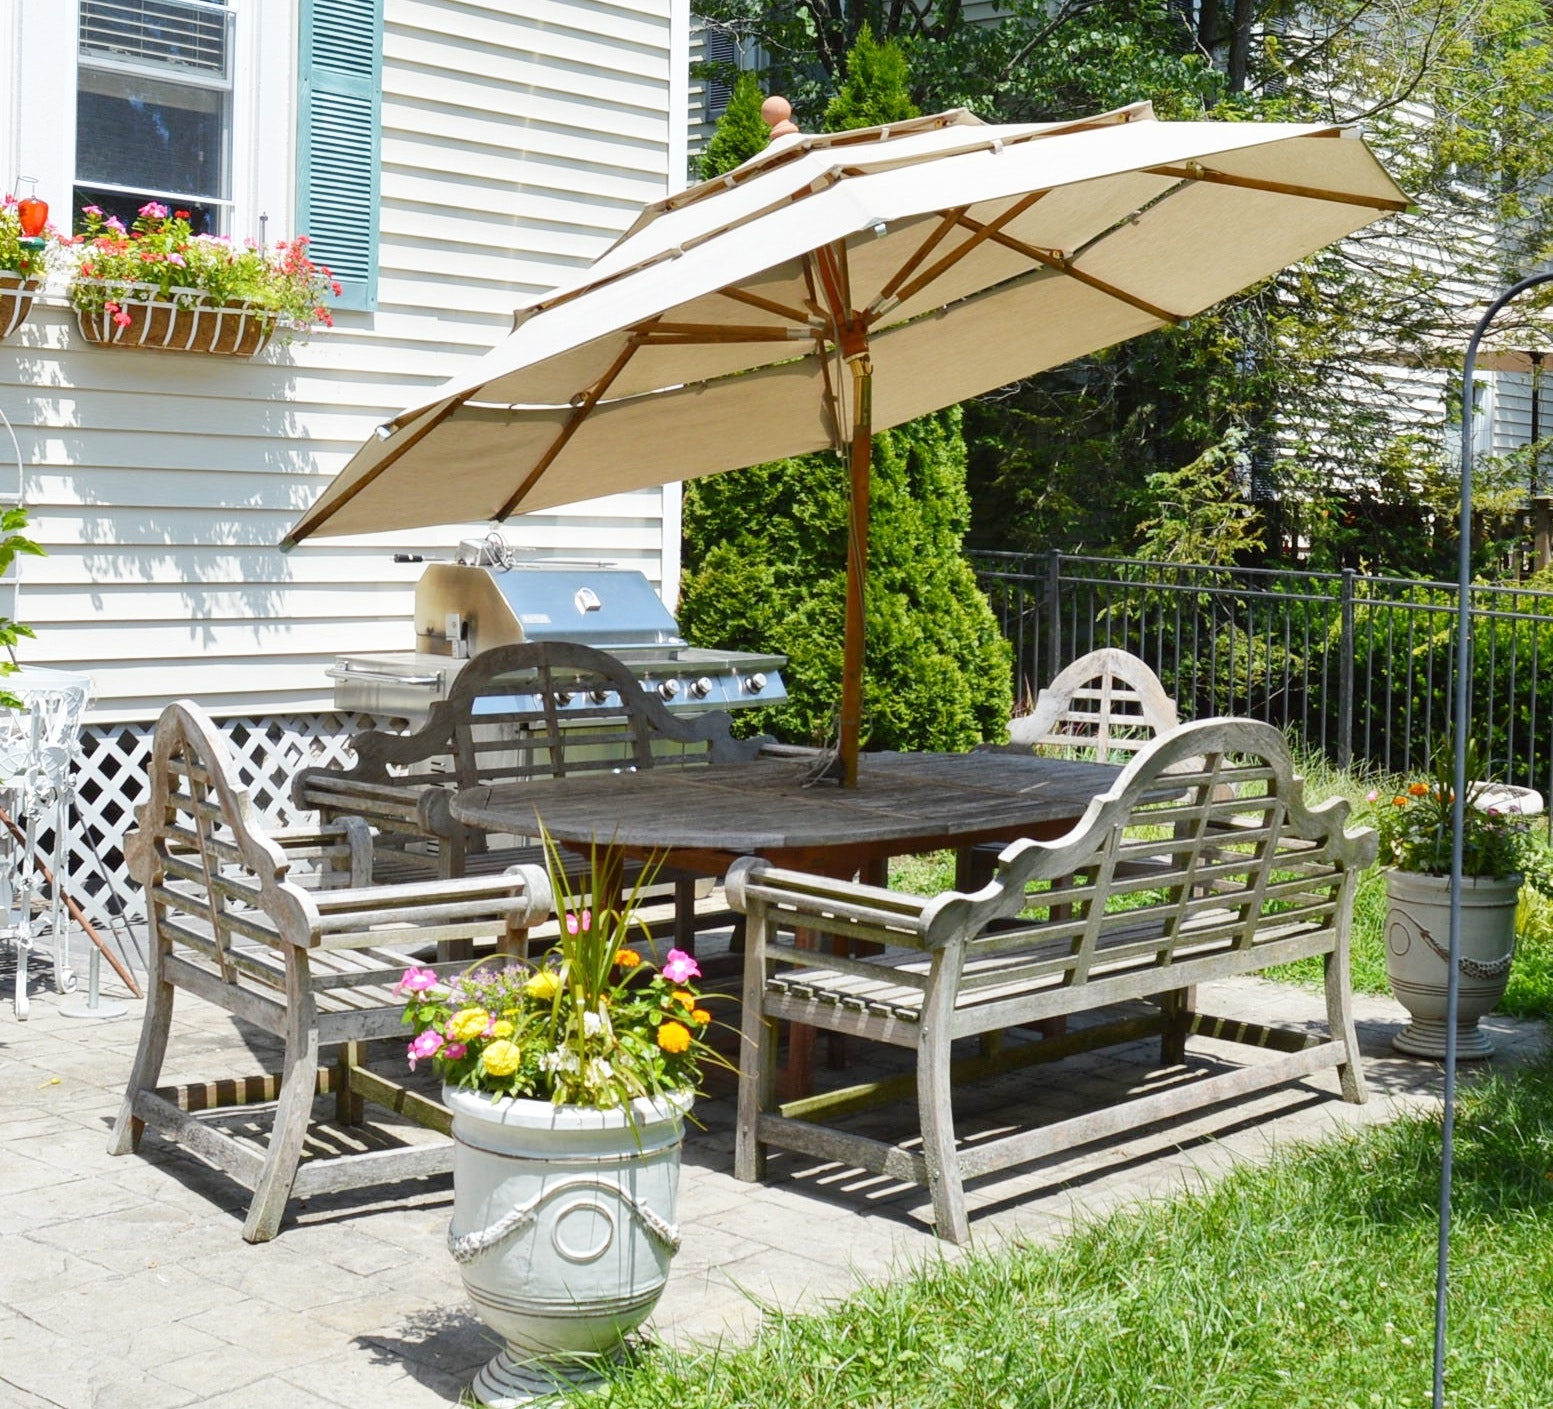 Teak Wood Patio Dining Set with Umbrella and Sunbrella Cushions